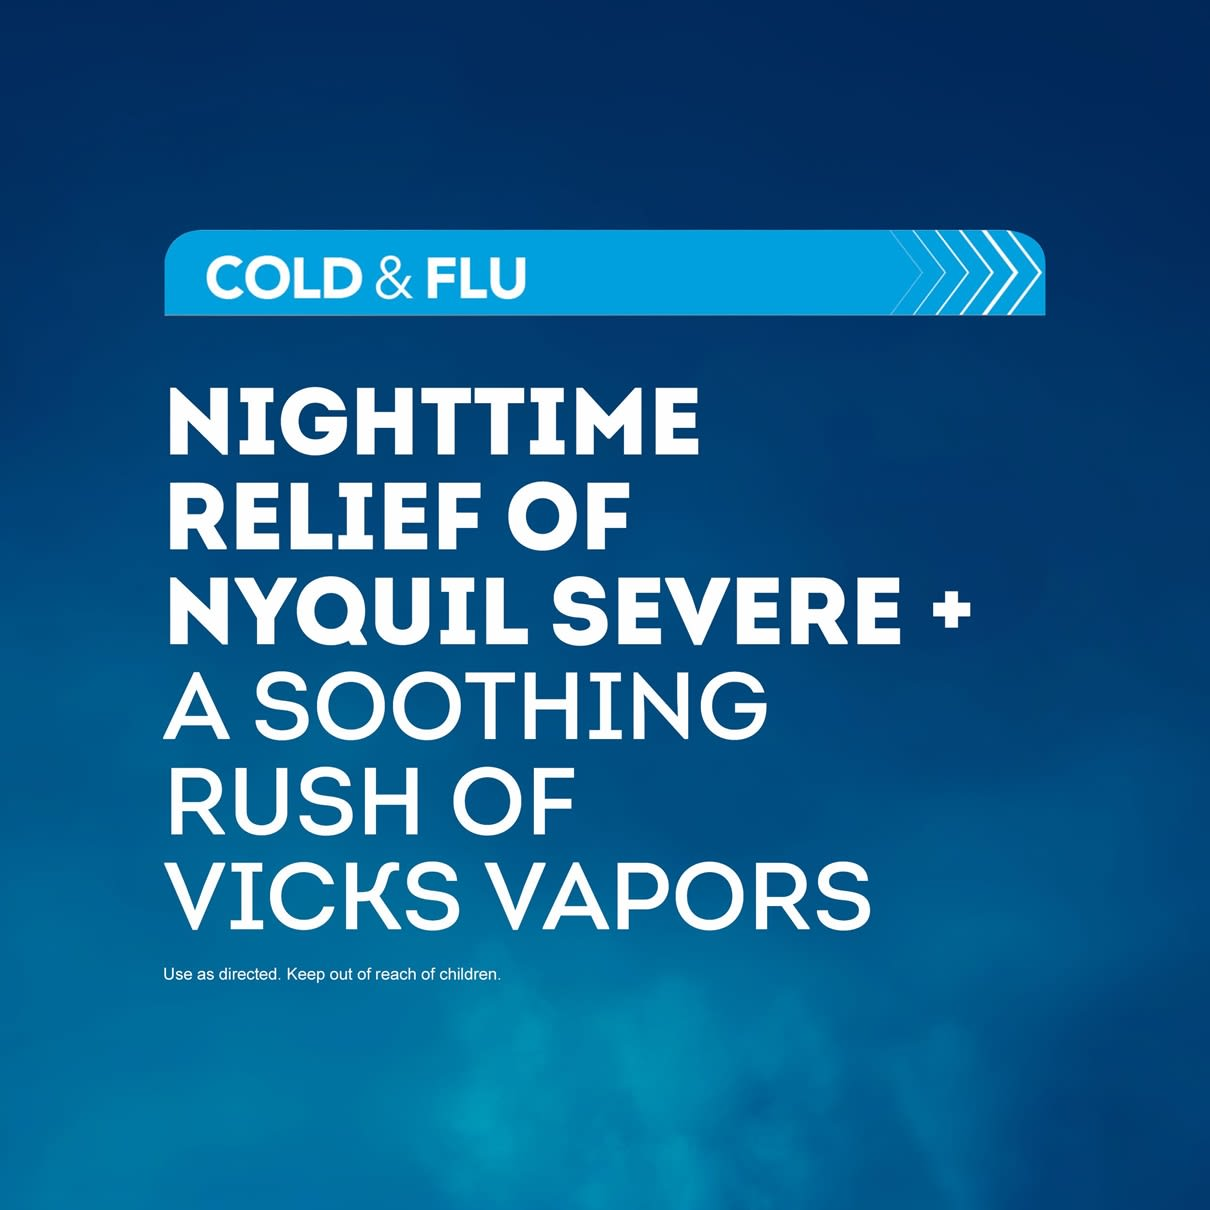 cold-and-flu-nighttime-relief-of-nyquil-severe-a-soothing-rush-of-vicks